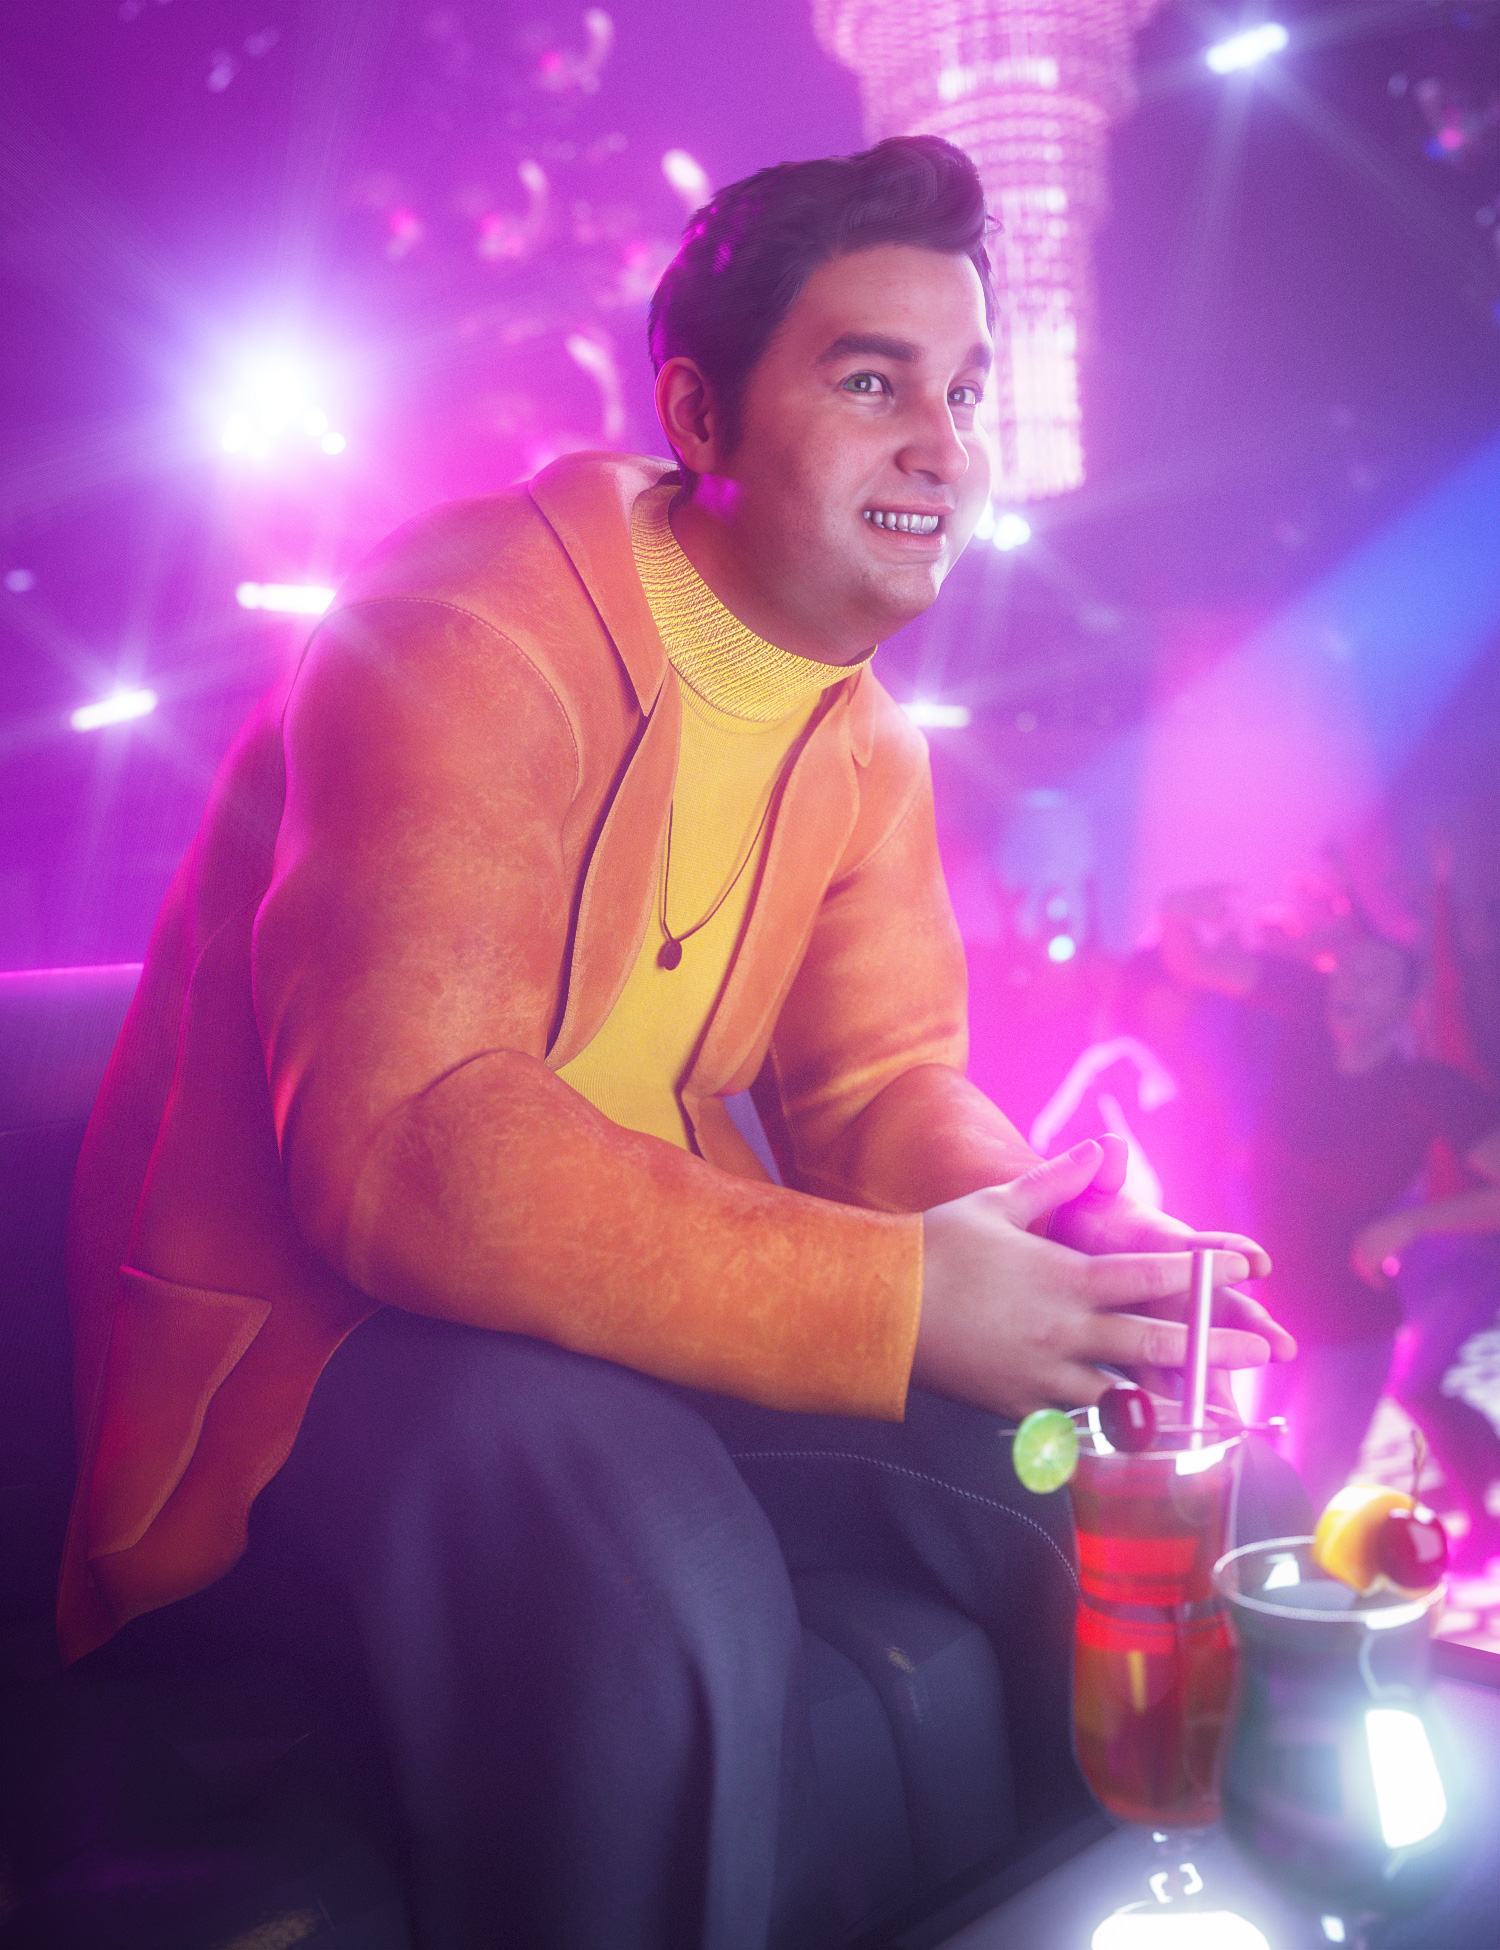 Fred 8.1 Brings Down the House Bundle by: , 3D Models by Daz 3D